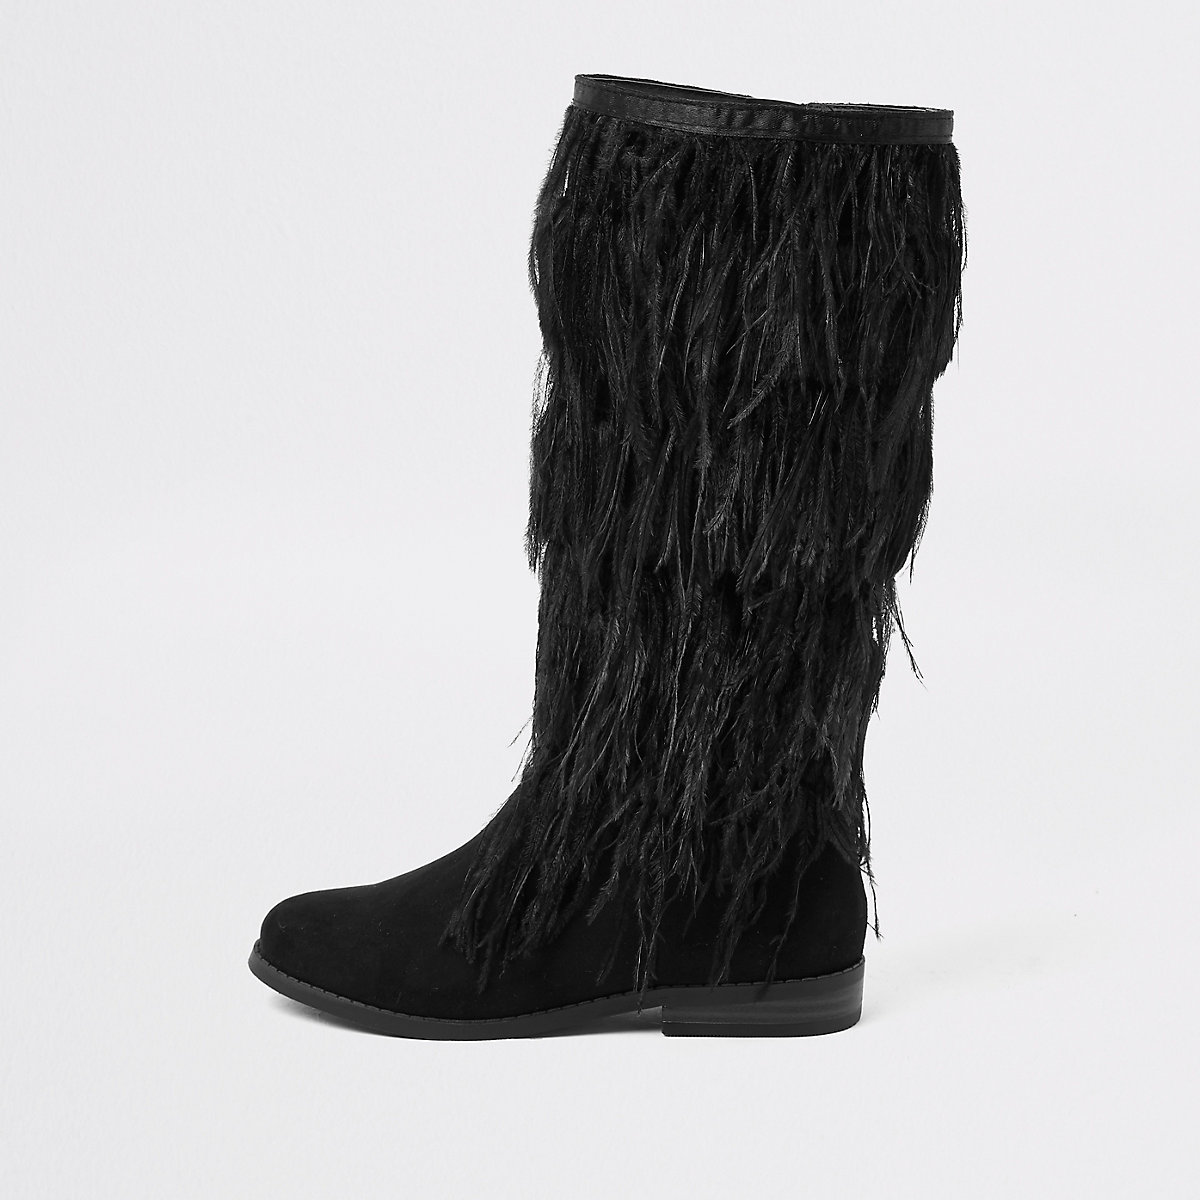 Girls black feather knee high boots